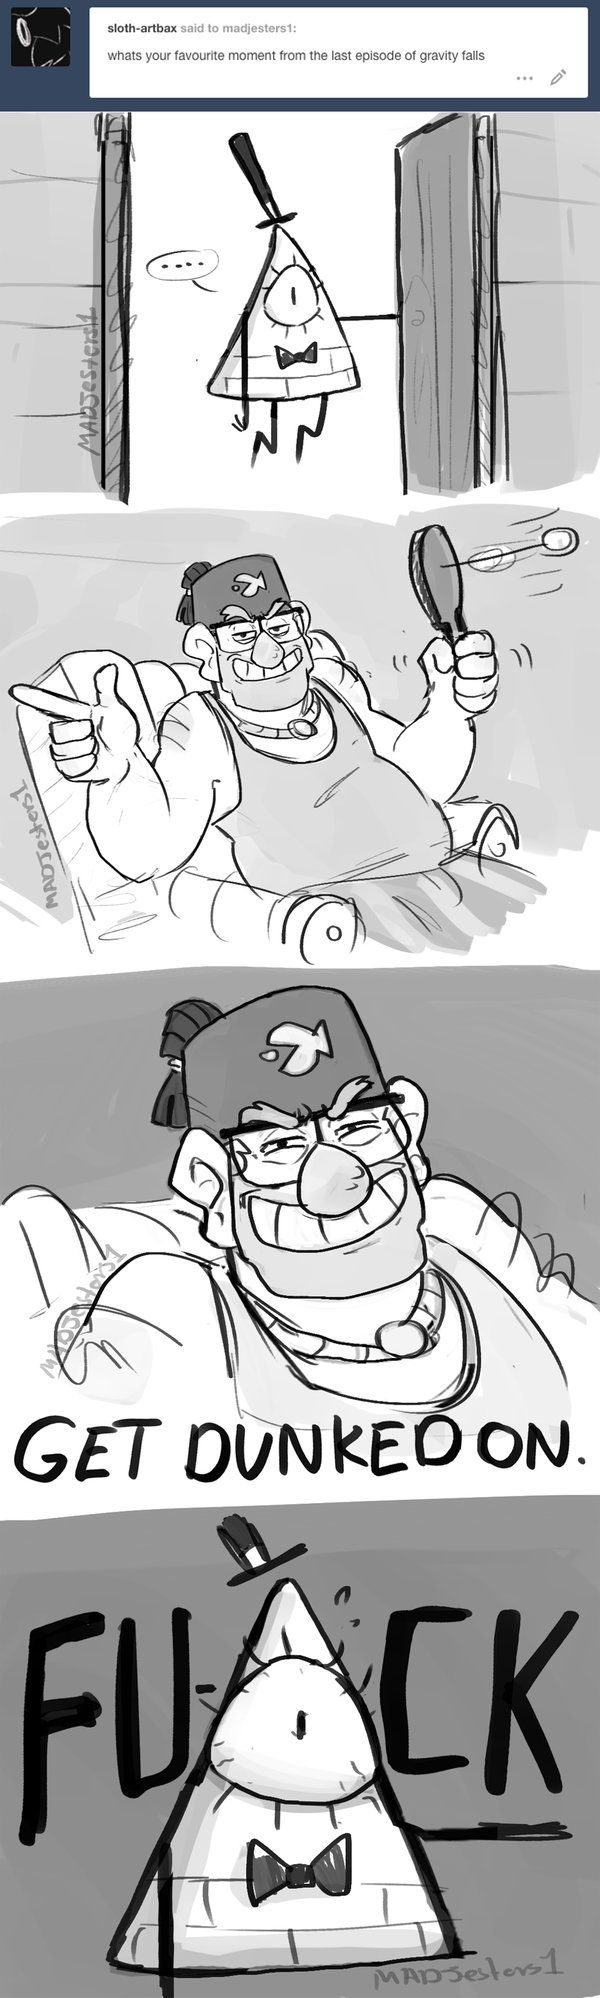 Gravity Falls- Get Dunked on Bill by MadJesters1 on DeviantArt